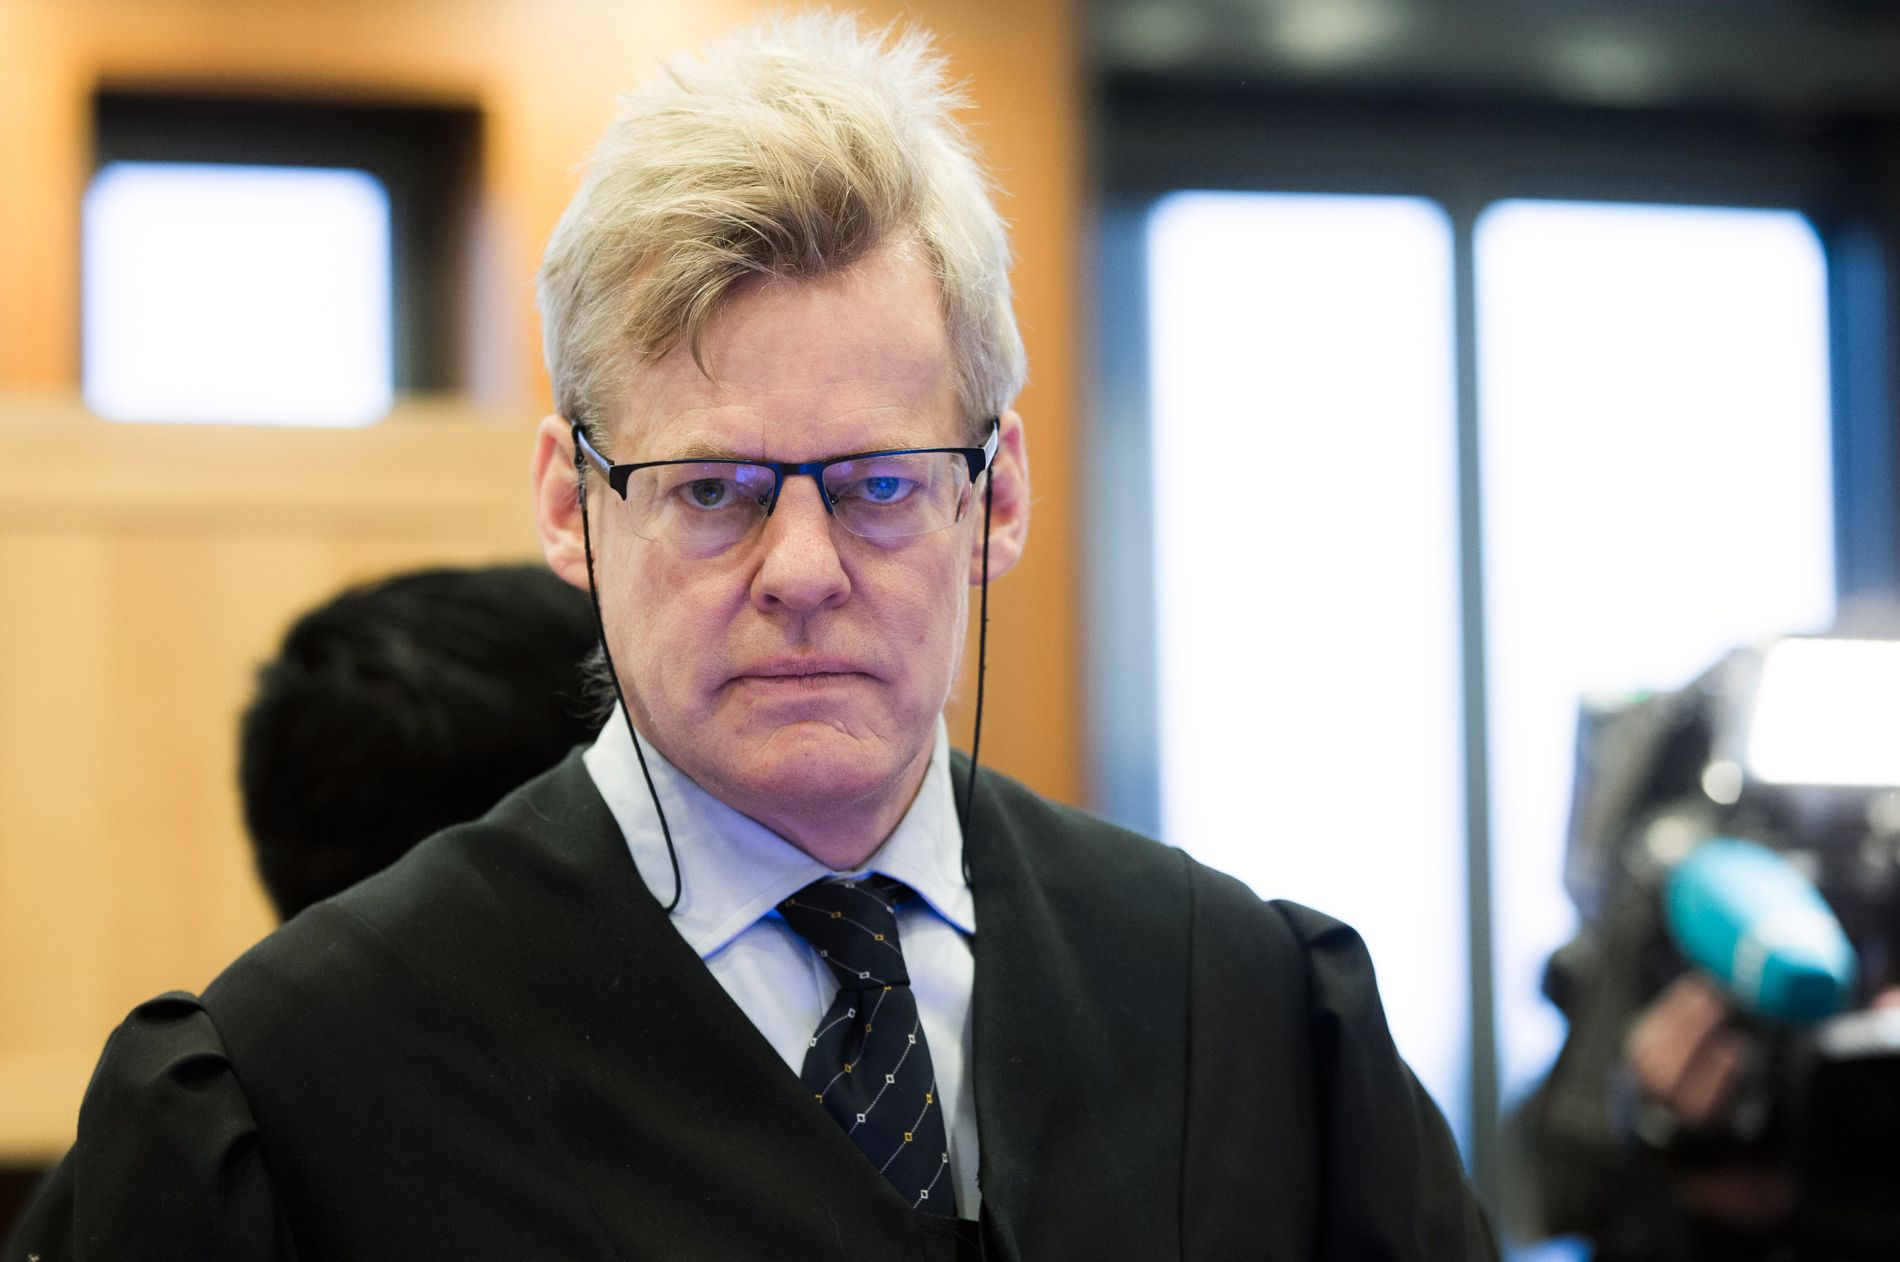 The Norwegian Pakistani who threatens the death penalty in Pakistan rejects referrals against him, emphasizing his Norwegian defender, lawyer Morten Furuholmen.